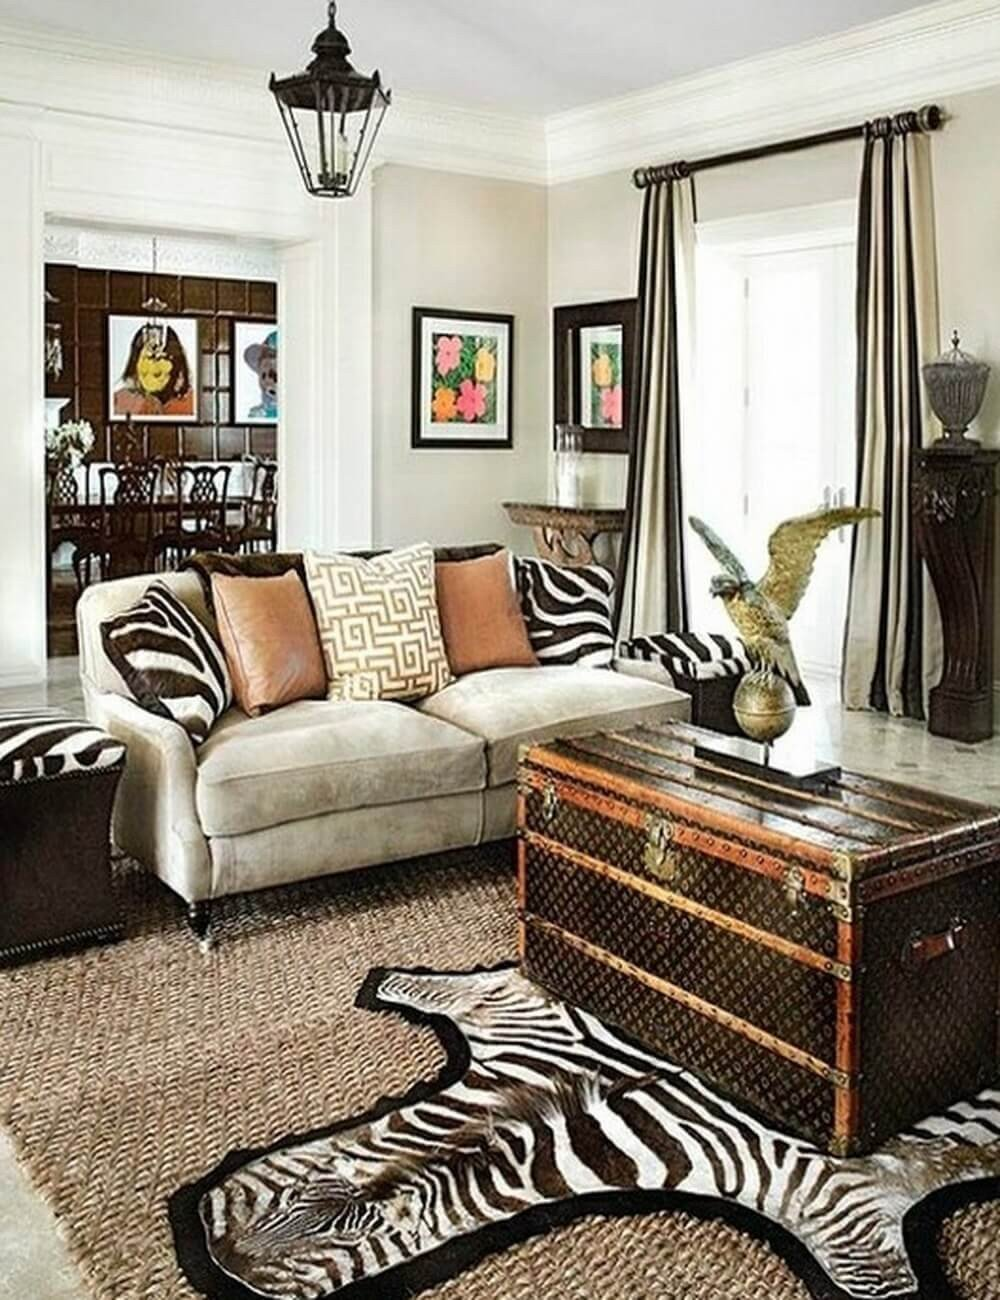 Animal Print Living Room Decor Inspirational Make Your Rooms Look Fierce and Wild by Using Zebra Print